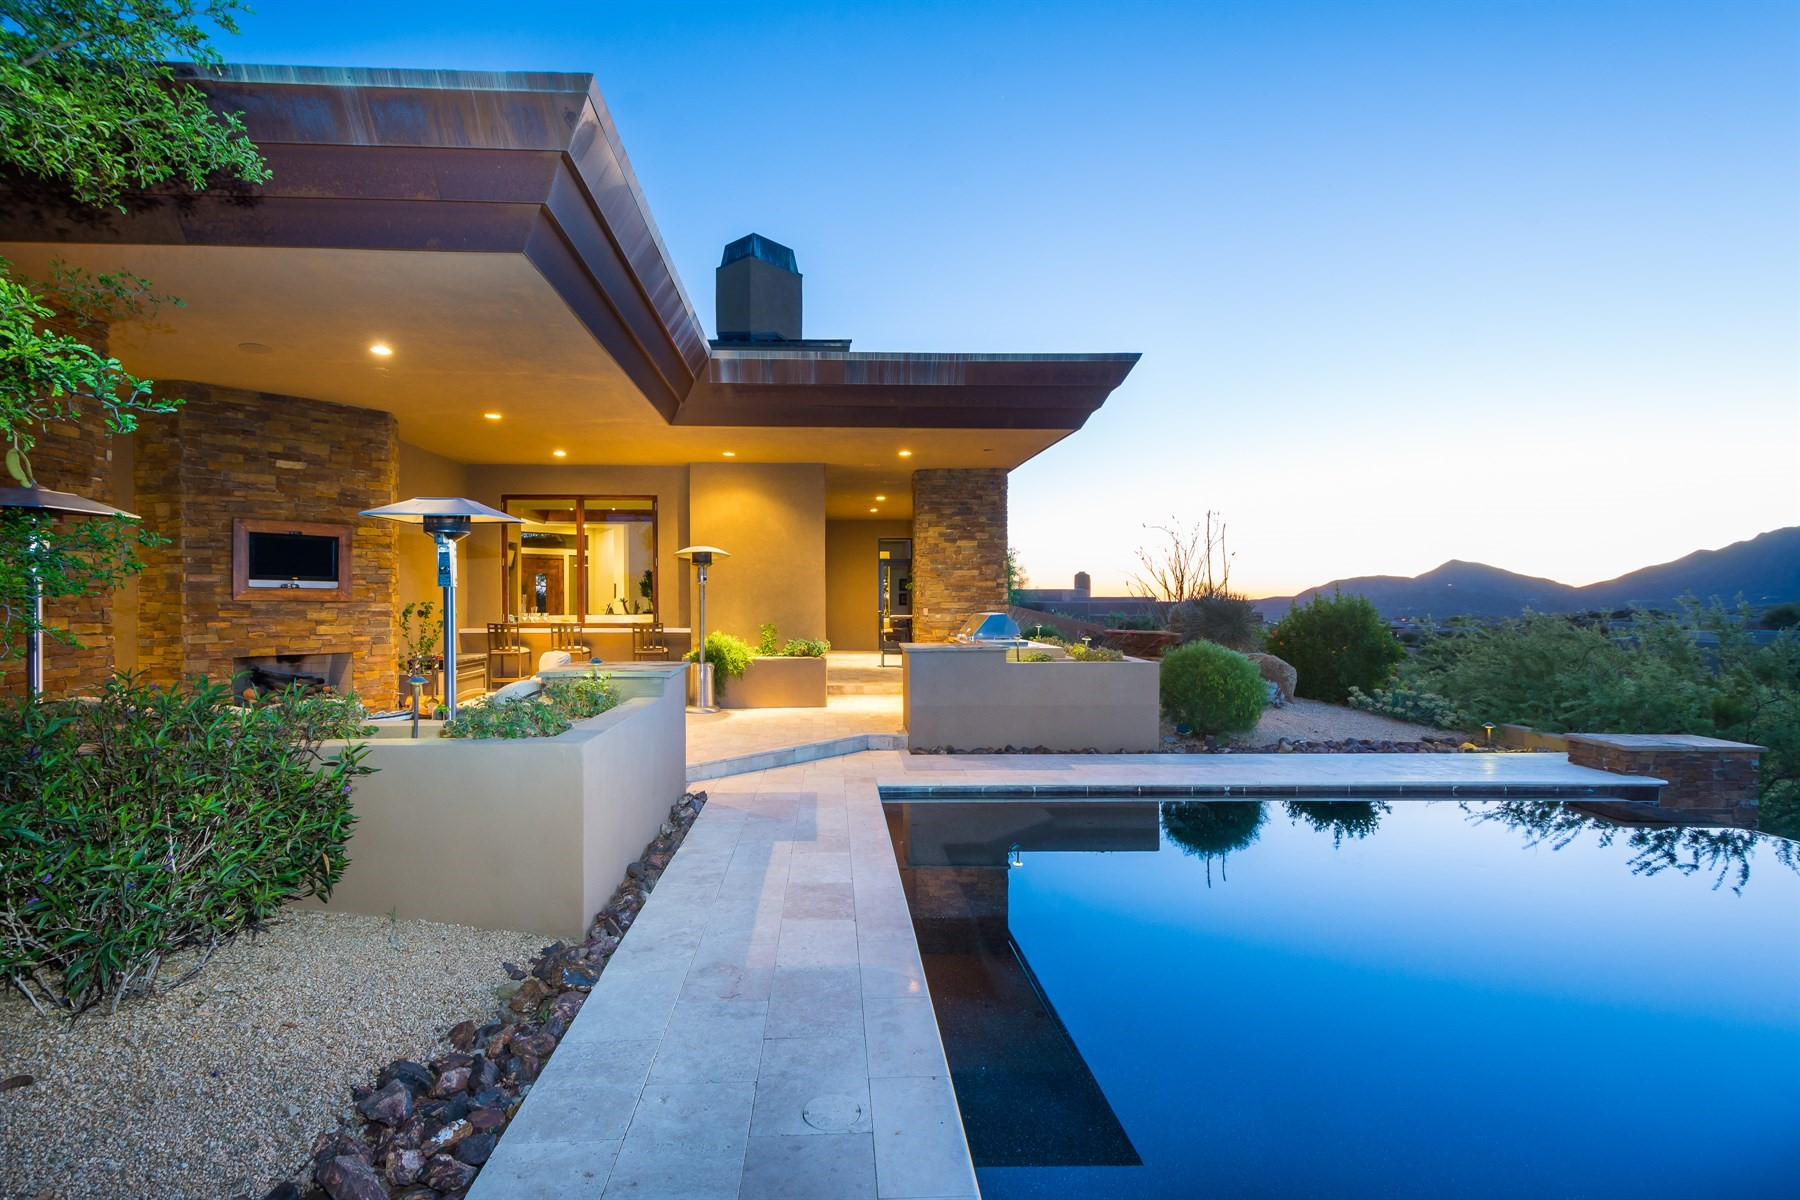 Single Family Home for Sale at Hilltop soft contemporary home in Desert Mountain 41065 N 109th Pl, Scottsdale, Arizona, 85262 United States